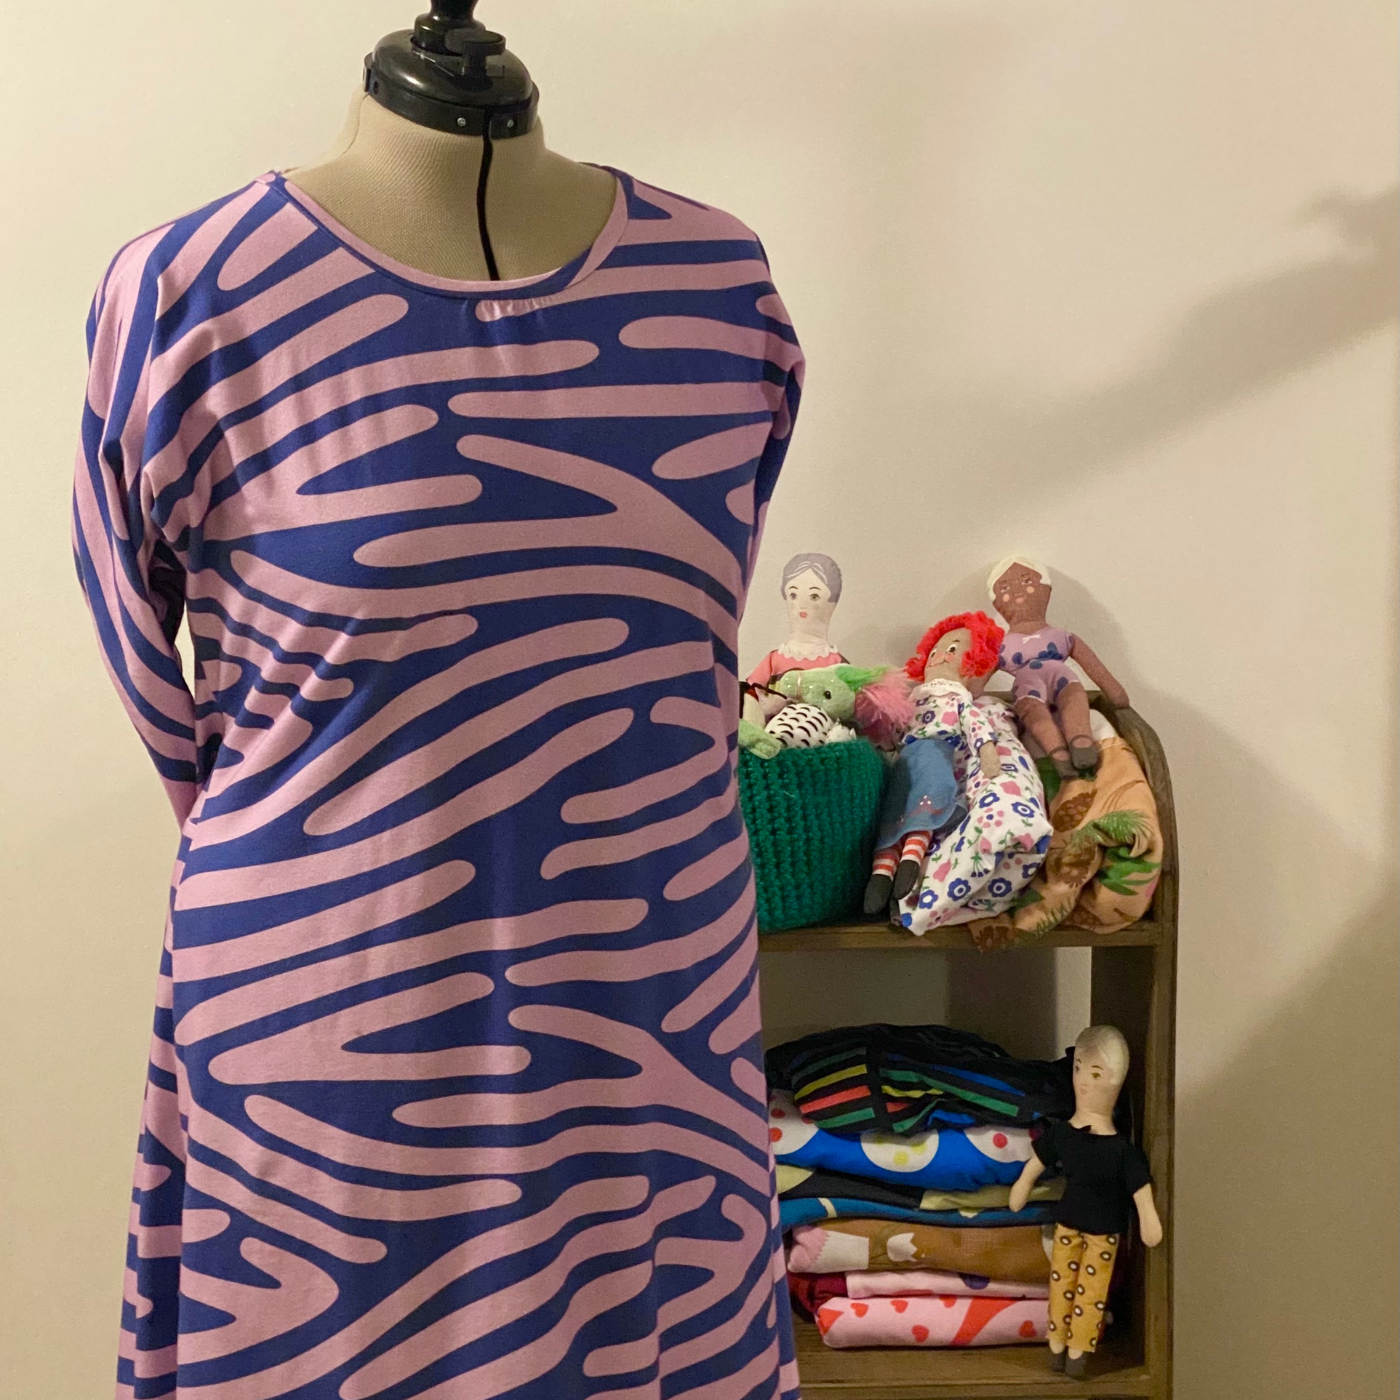 A blue dress with thick pink lines running through it is on a dress form